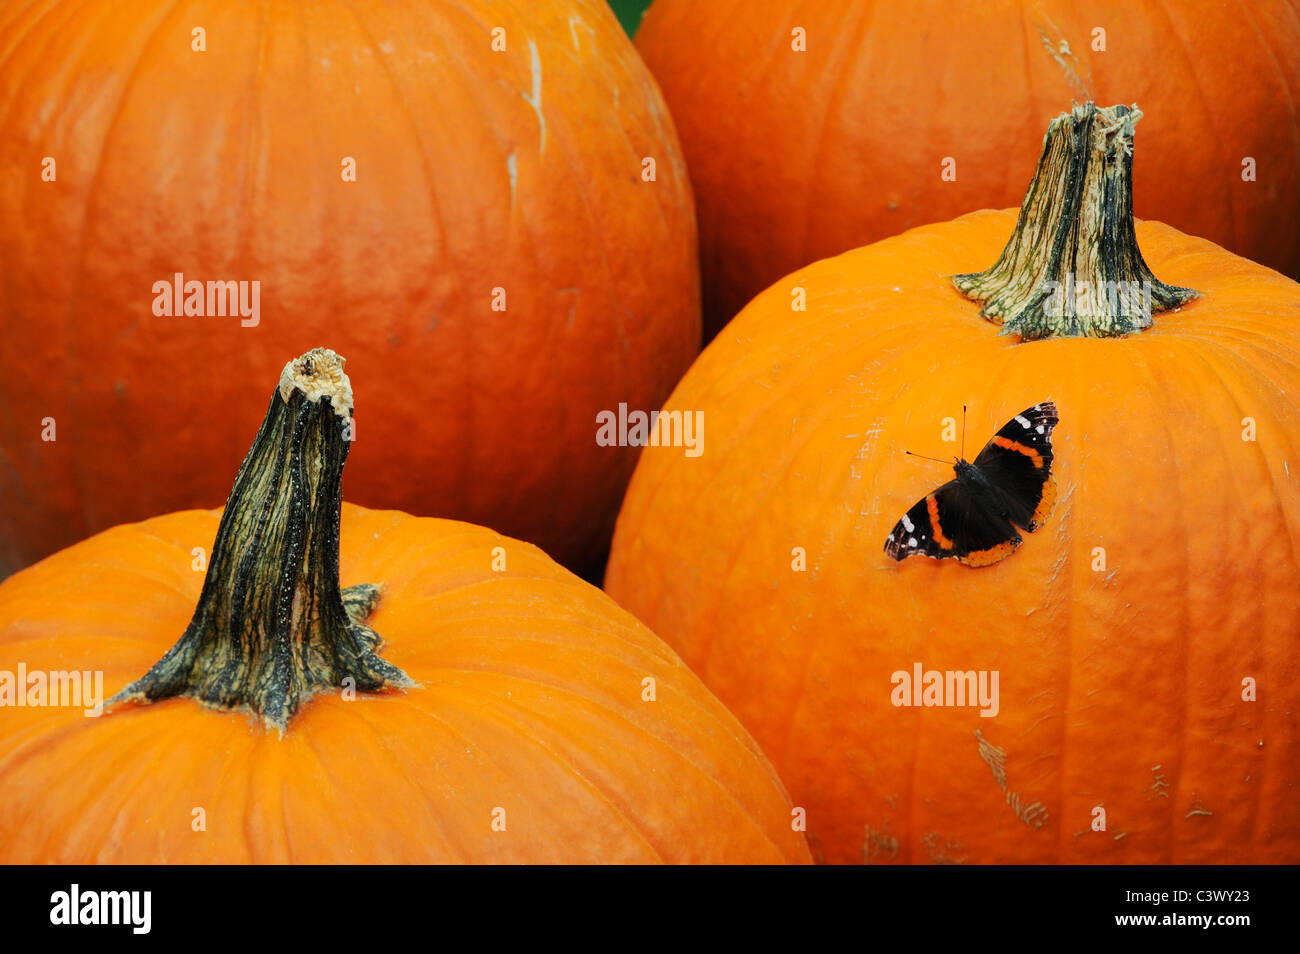 Red Admiral (Vanessa atalanta), adult on Pumpkin, Comal County, Hill Country, Central Texas, USA - Stock Image